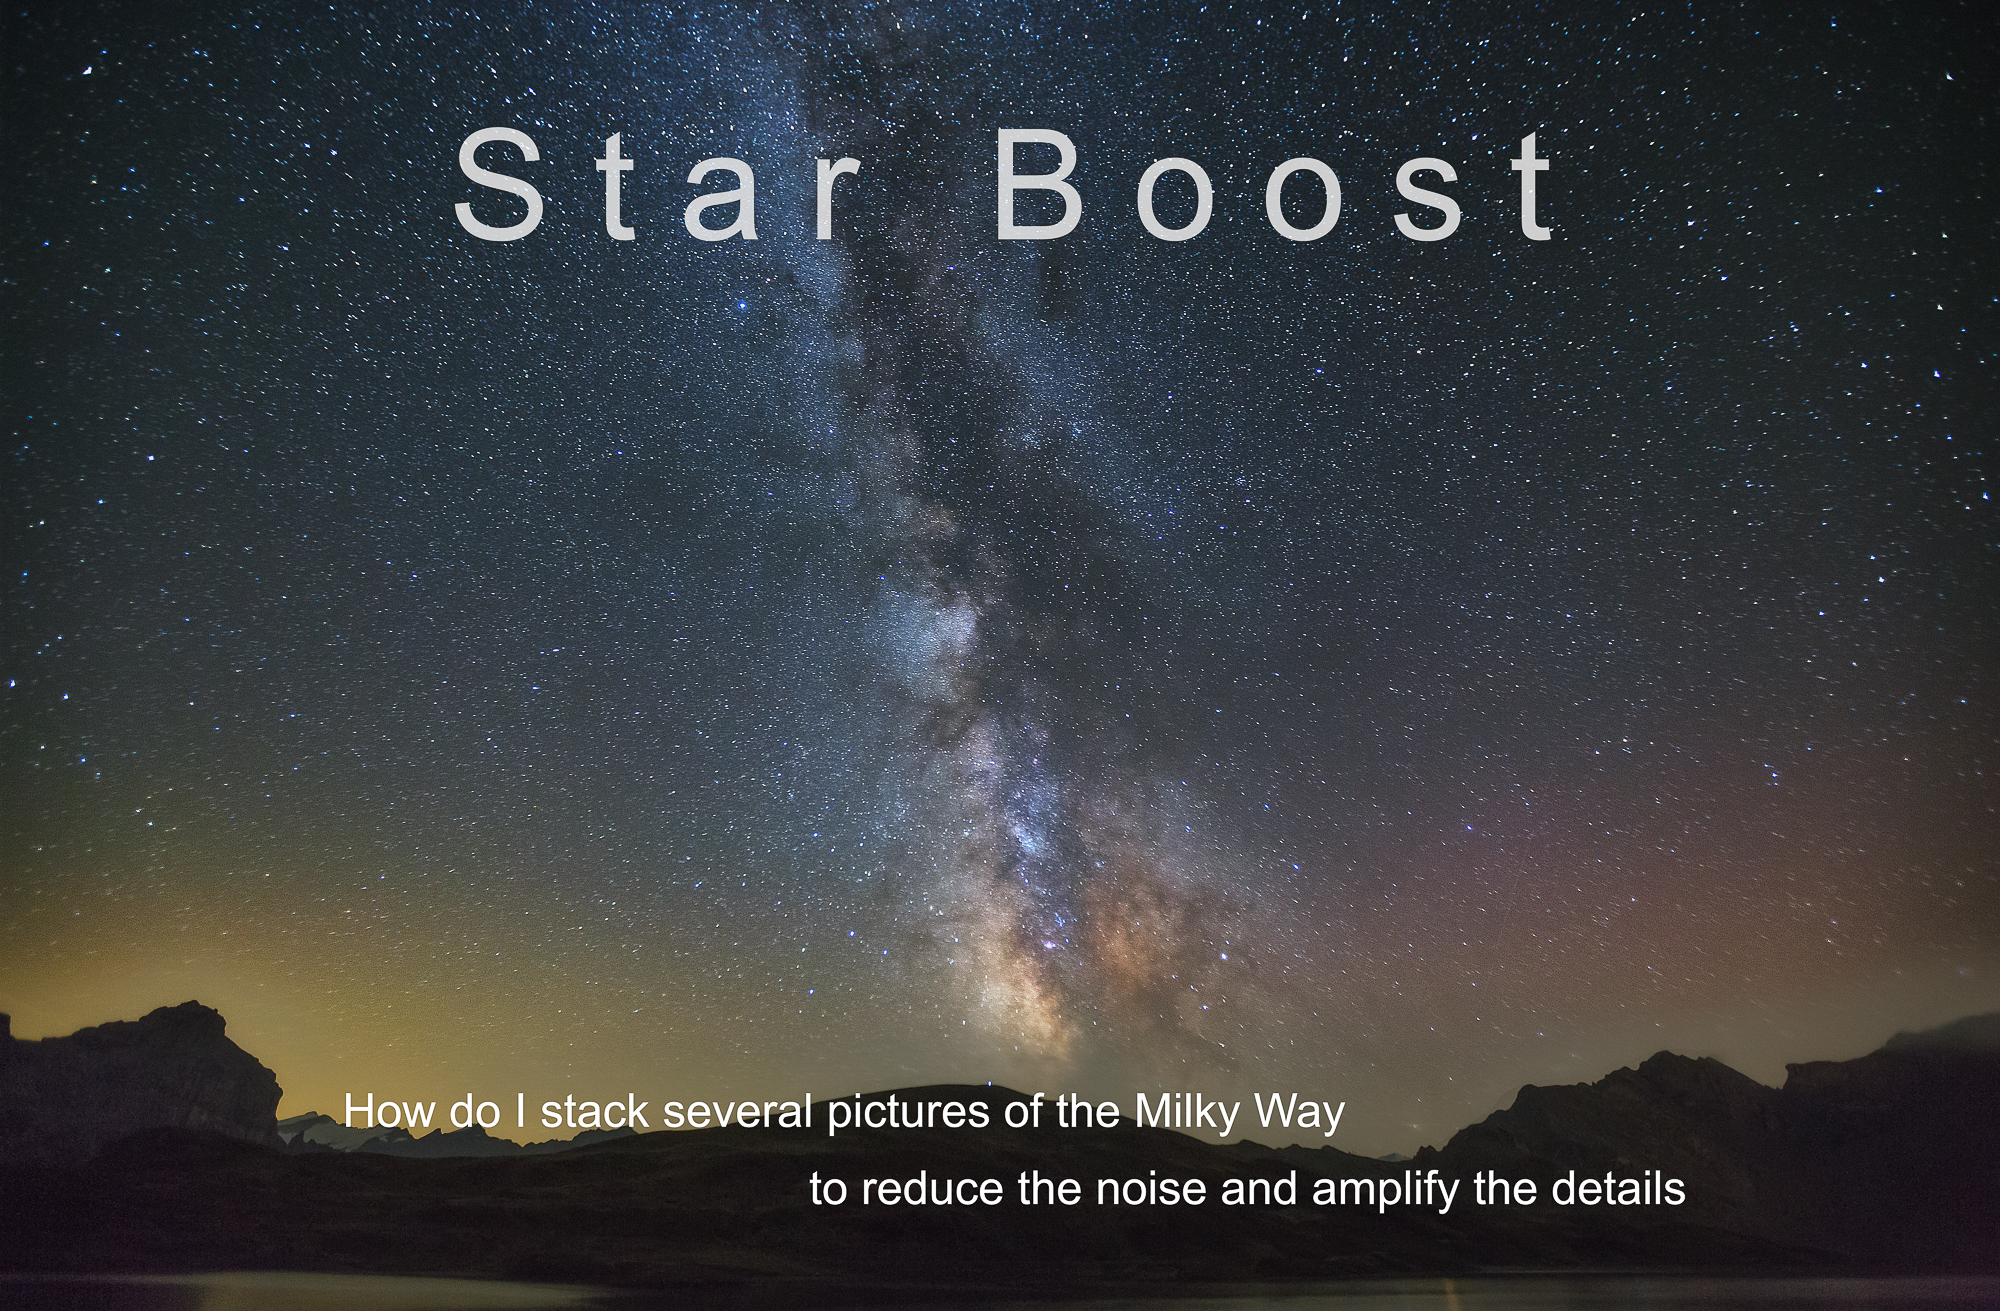 2 Tutorial-Stacking-Milkyway-Astrophotography-Instruction-Photoshop-Star Boost-English